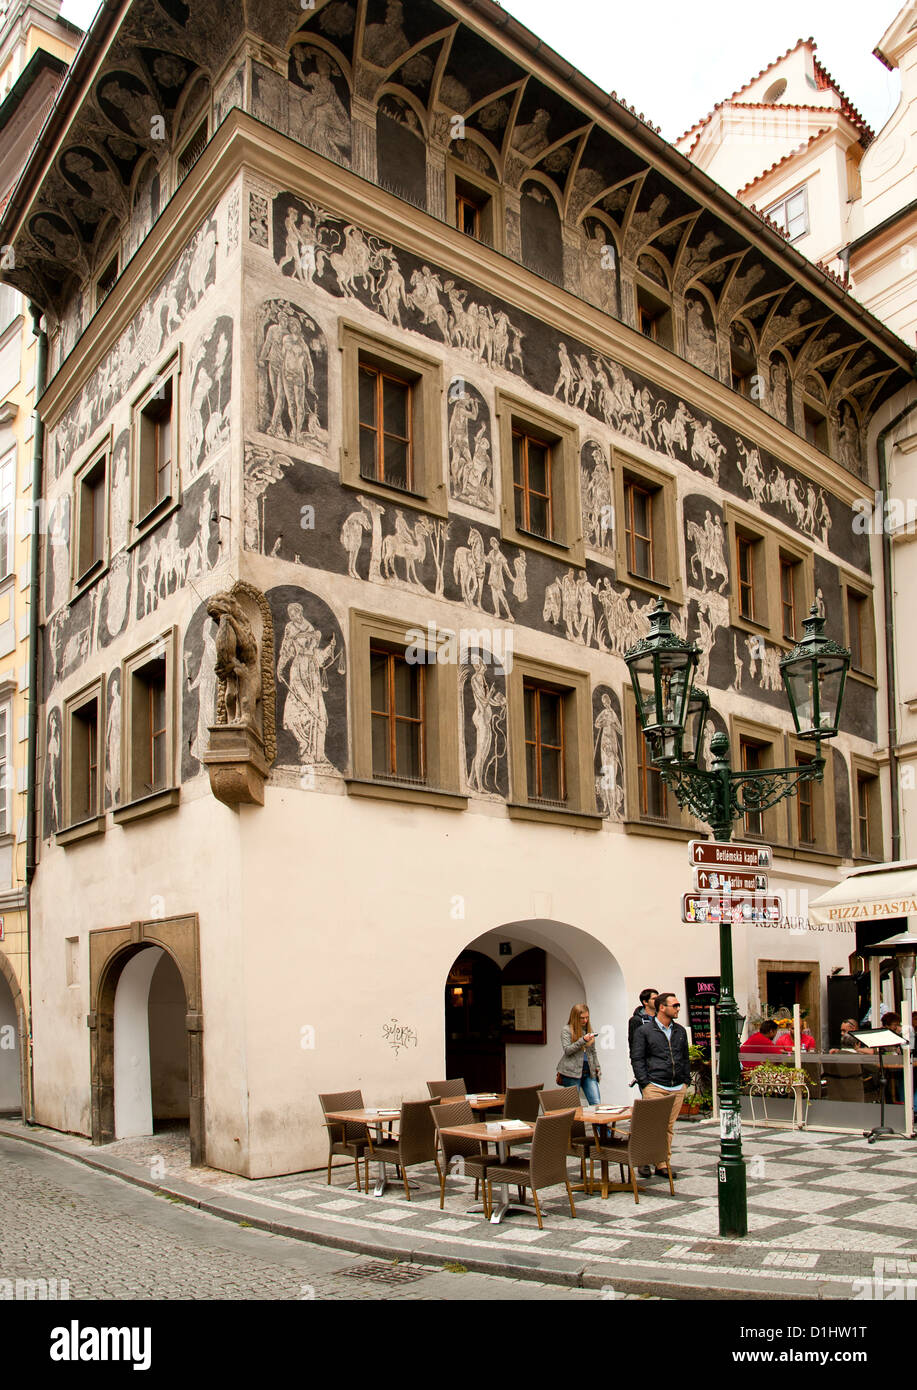 'House at the Minute', a renaissance building featuring architectural sgraffito on Old Town Square in Prague. - Stock Image